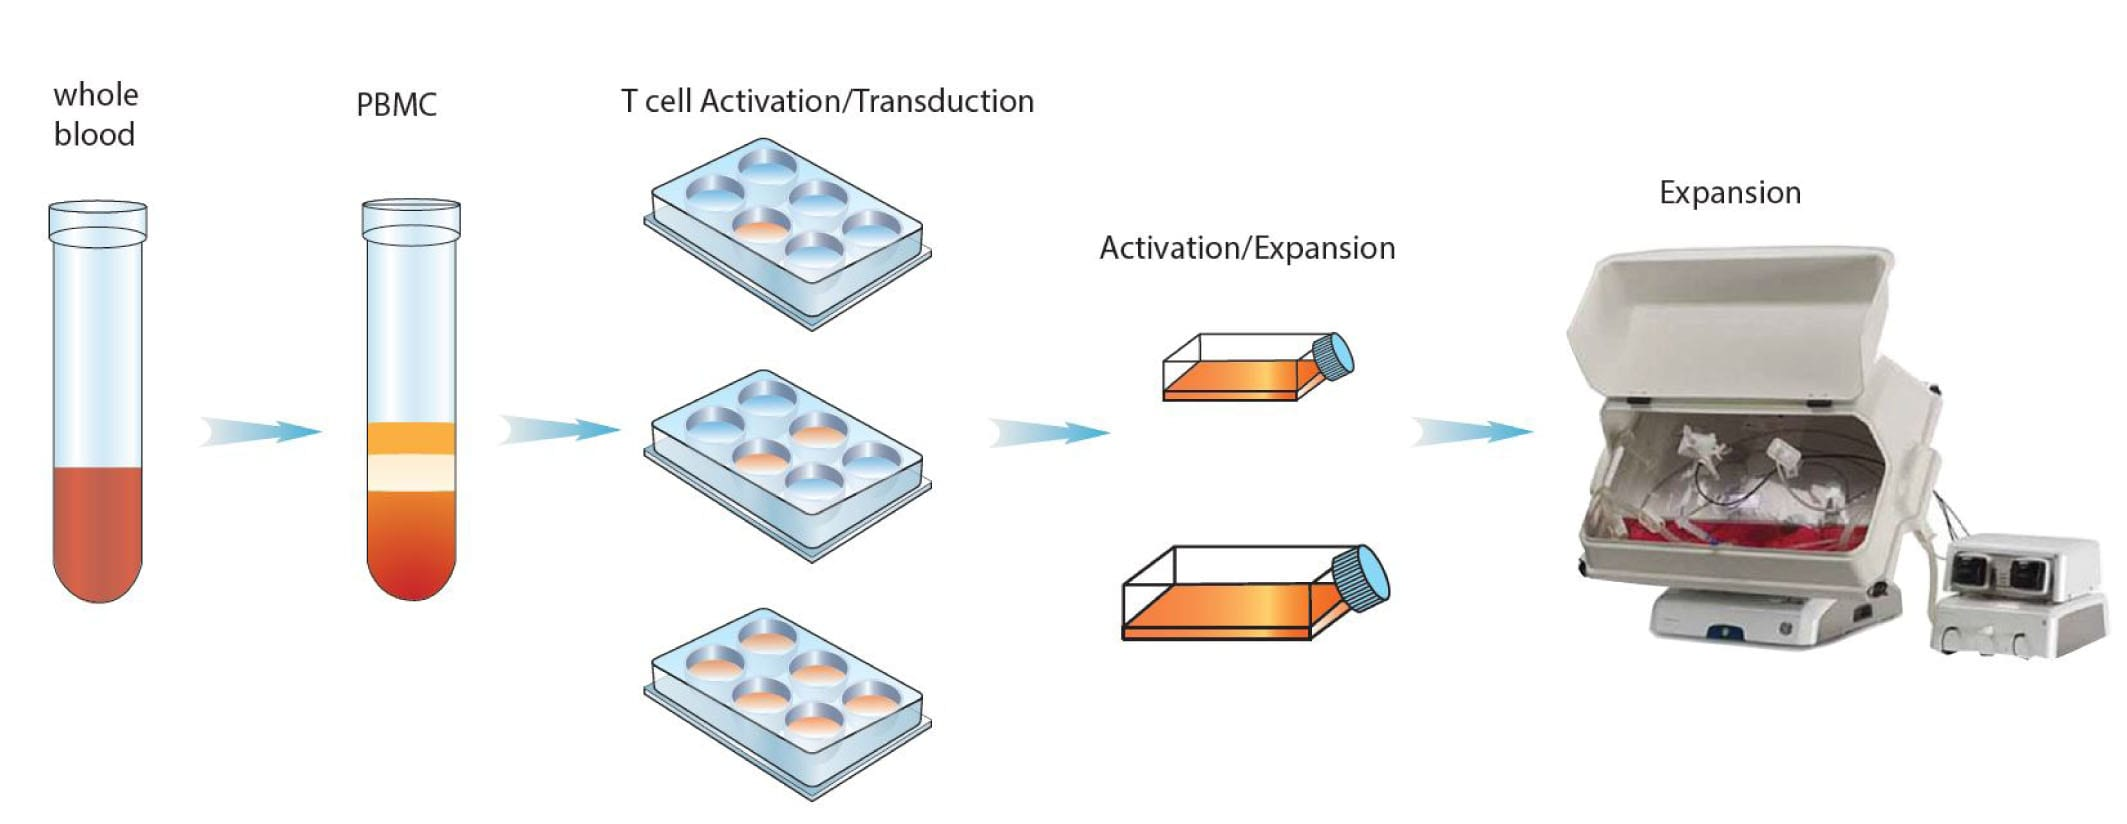 CAR-T cell activation and expansion.